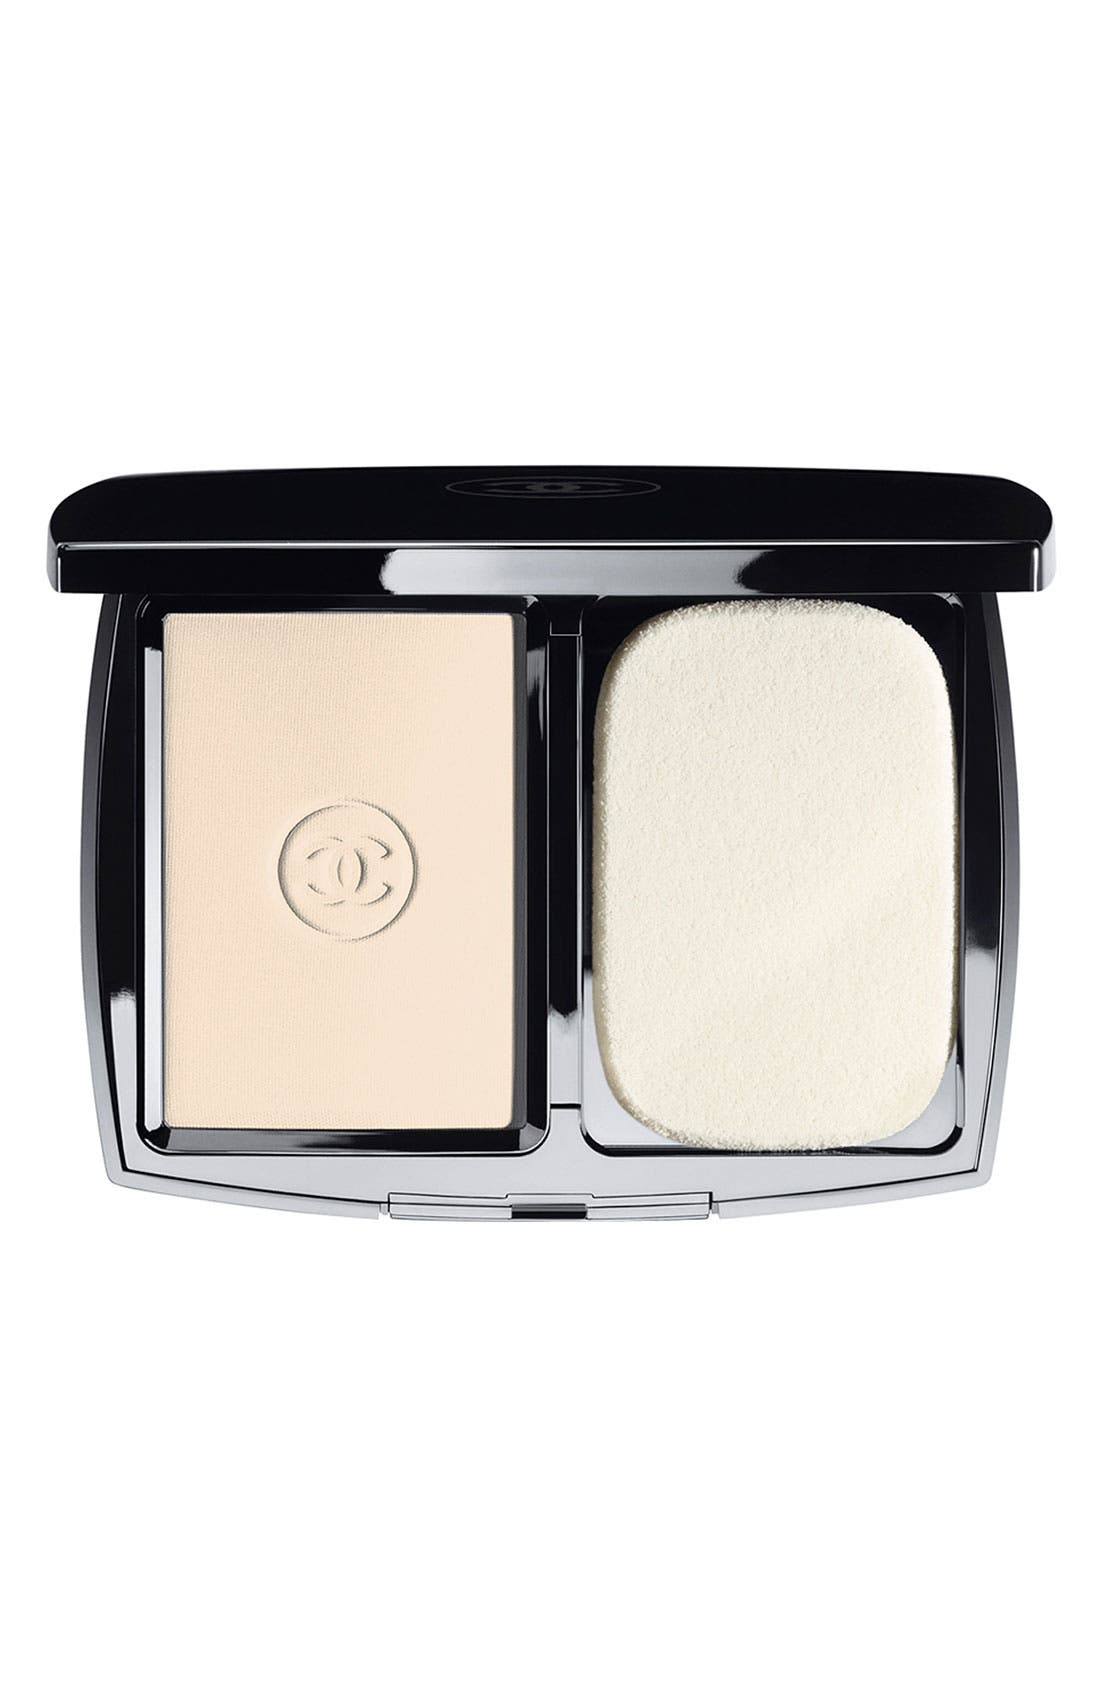 DOUBLE PERFECTION LUMIÈRE<br />Long-Wear Flawless Sunscreen Powder Makeup Broad Spectrum SPF 15,                             Main thumbnail 1, color,                             250